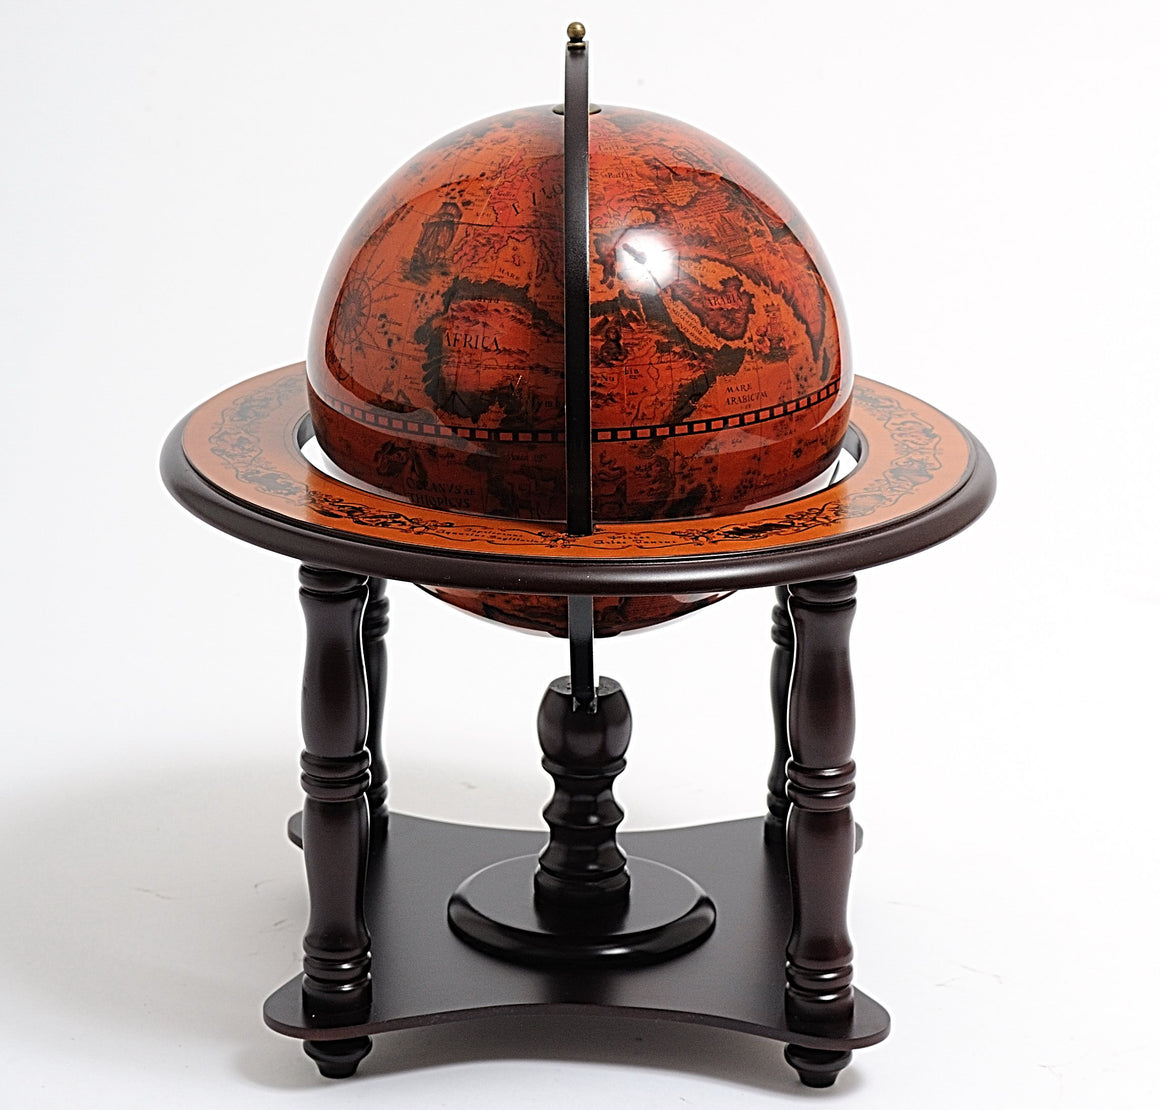 Old Modern Handicrafts  8 3/4 inch World Globe - Decor and Gifts Galore